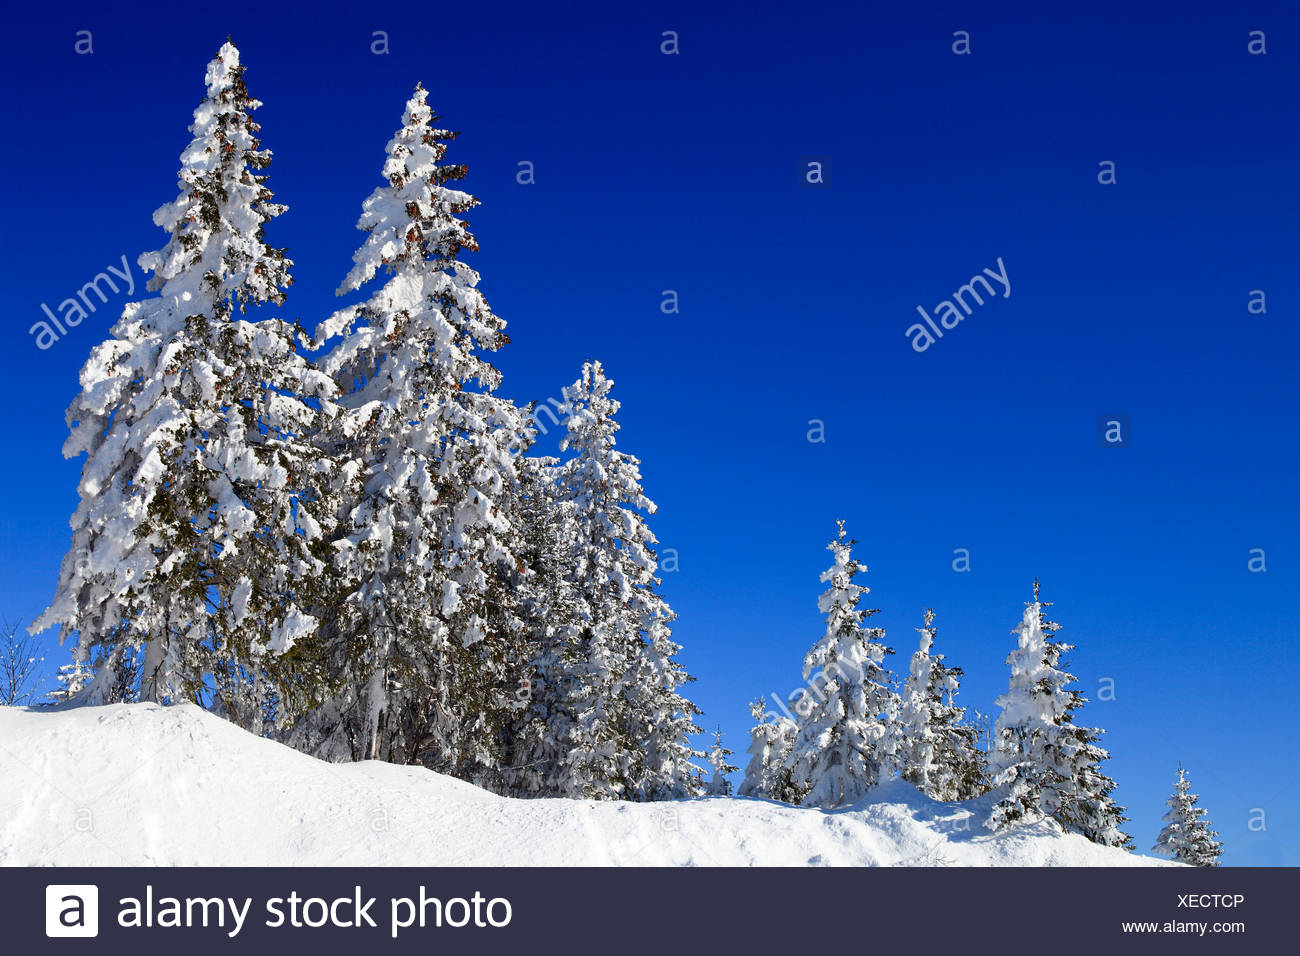 Norway spruce (Picea abies), snow-covered spruces in the foothills of the Alps, Switzerland, Gurnigel - Stock Image